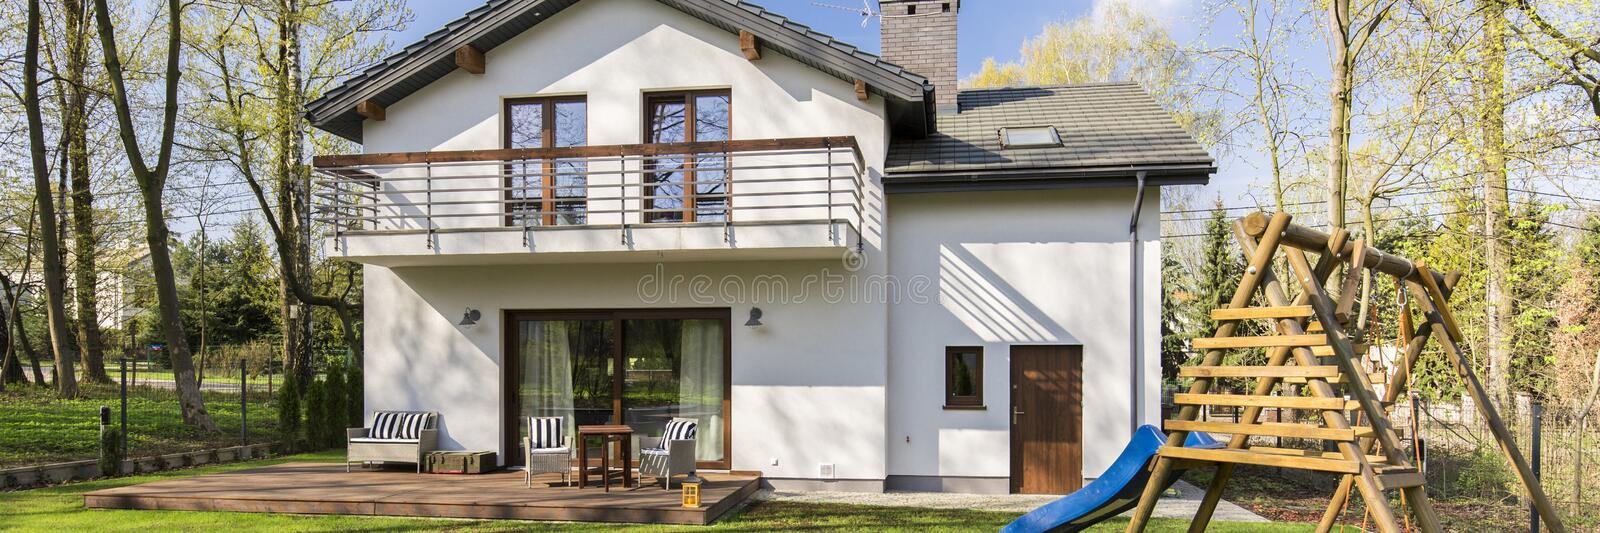 Modern house in the suburbs stock images